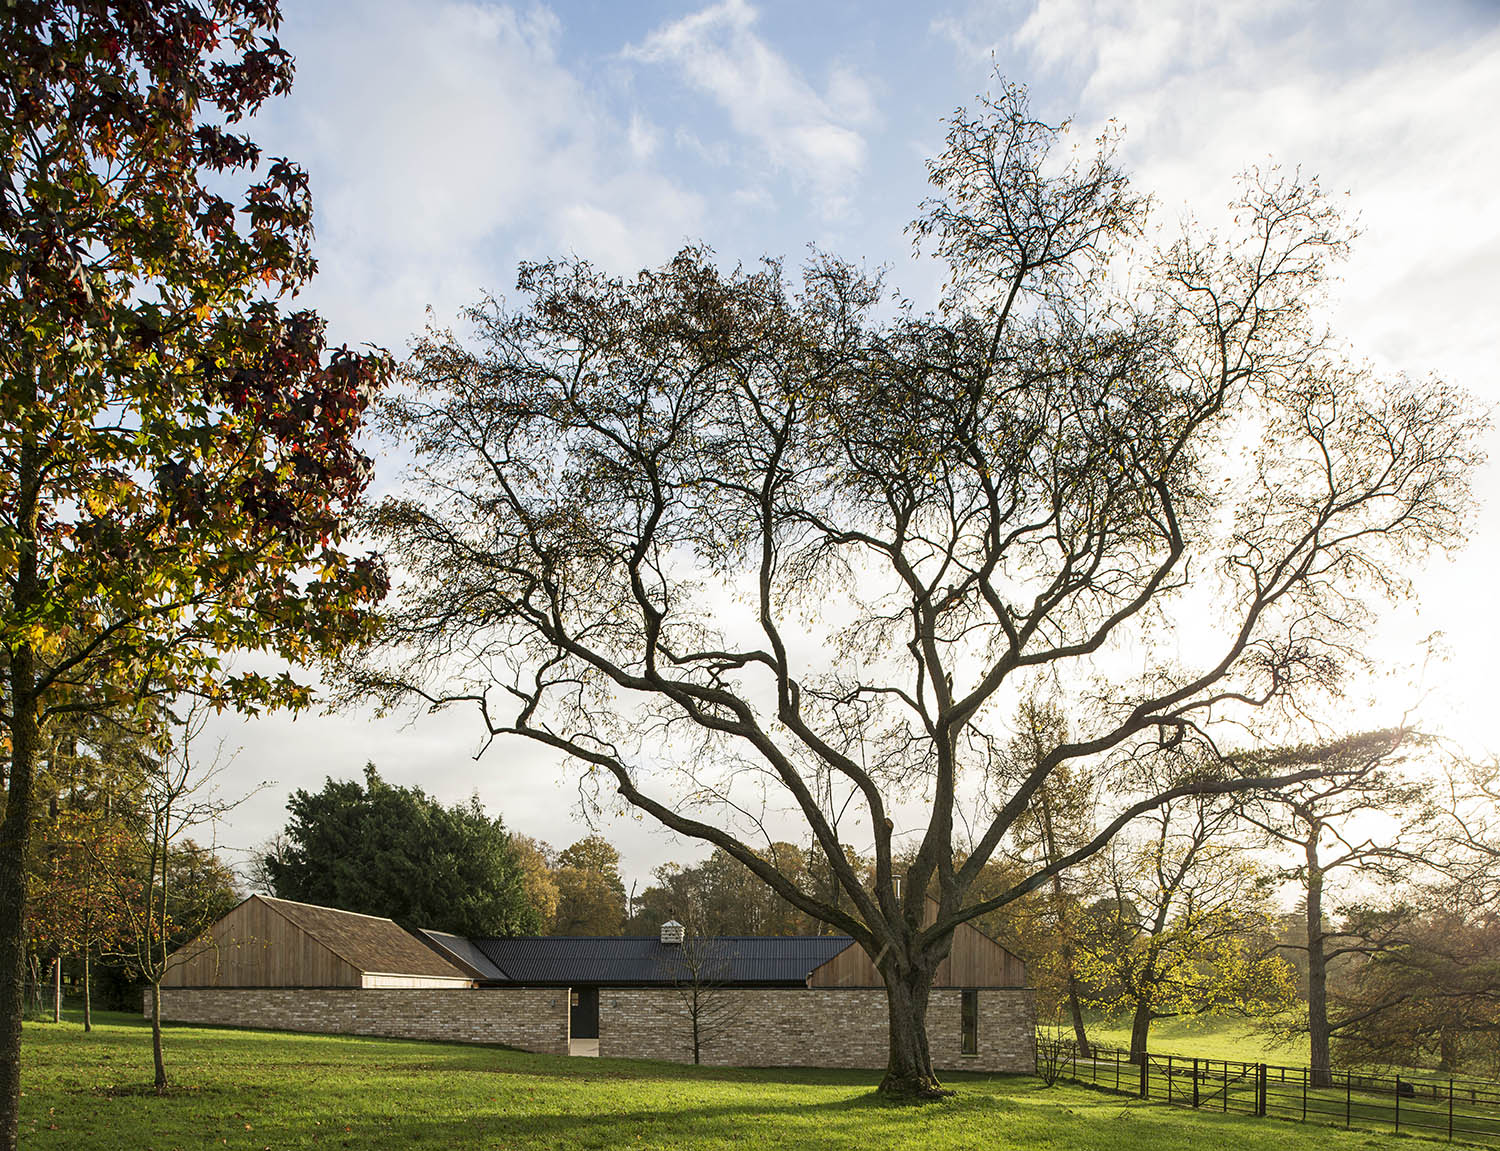 The Old Barn + Stables / Mclean Quinlan